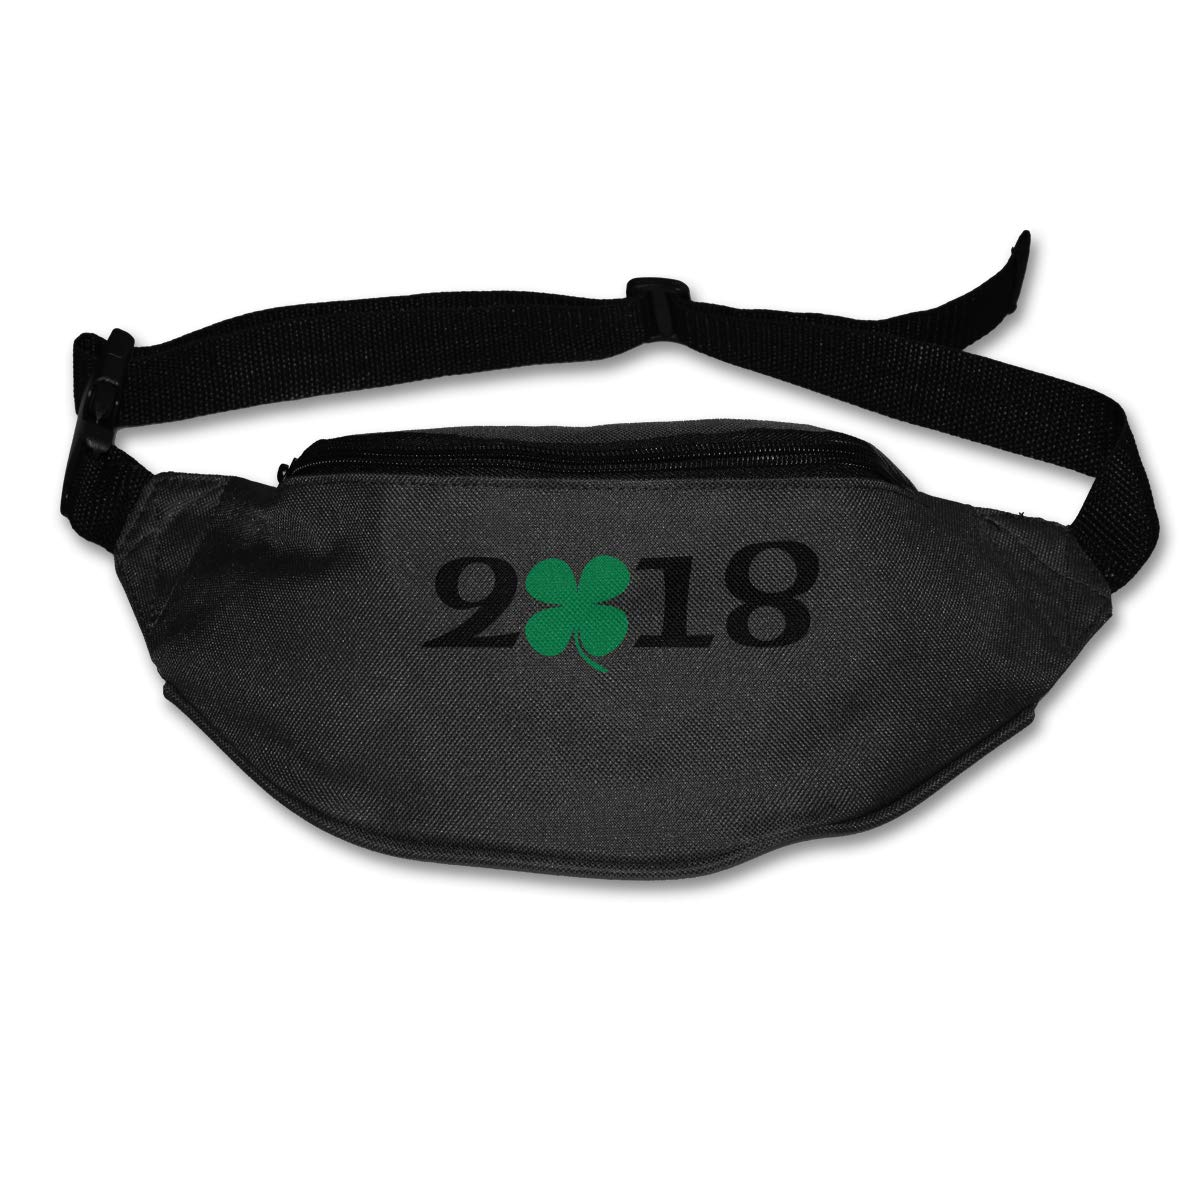 2018 Ireland Sport Waist Bag Fanny Pack Adjustable For Travel